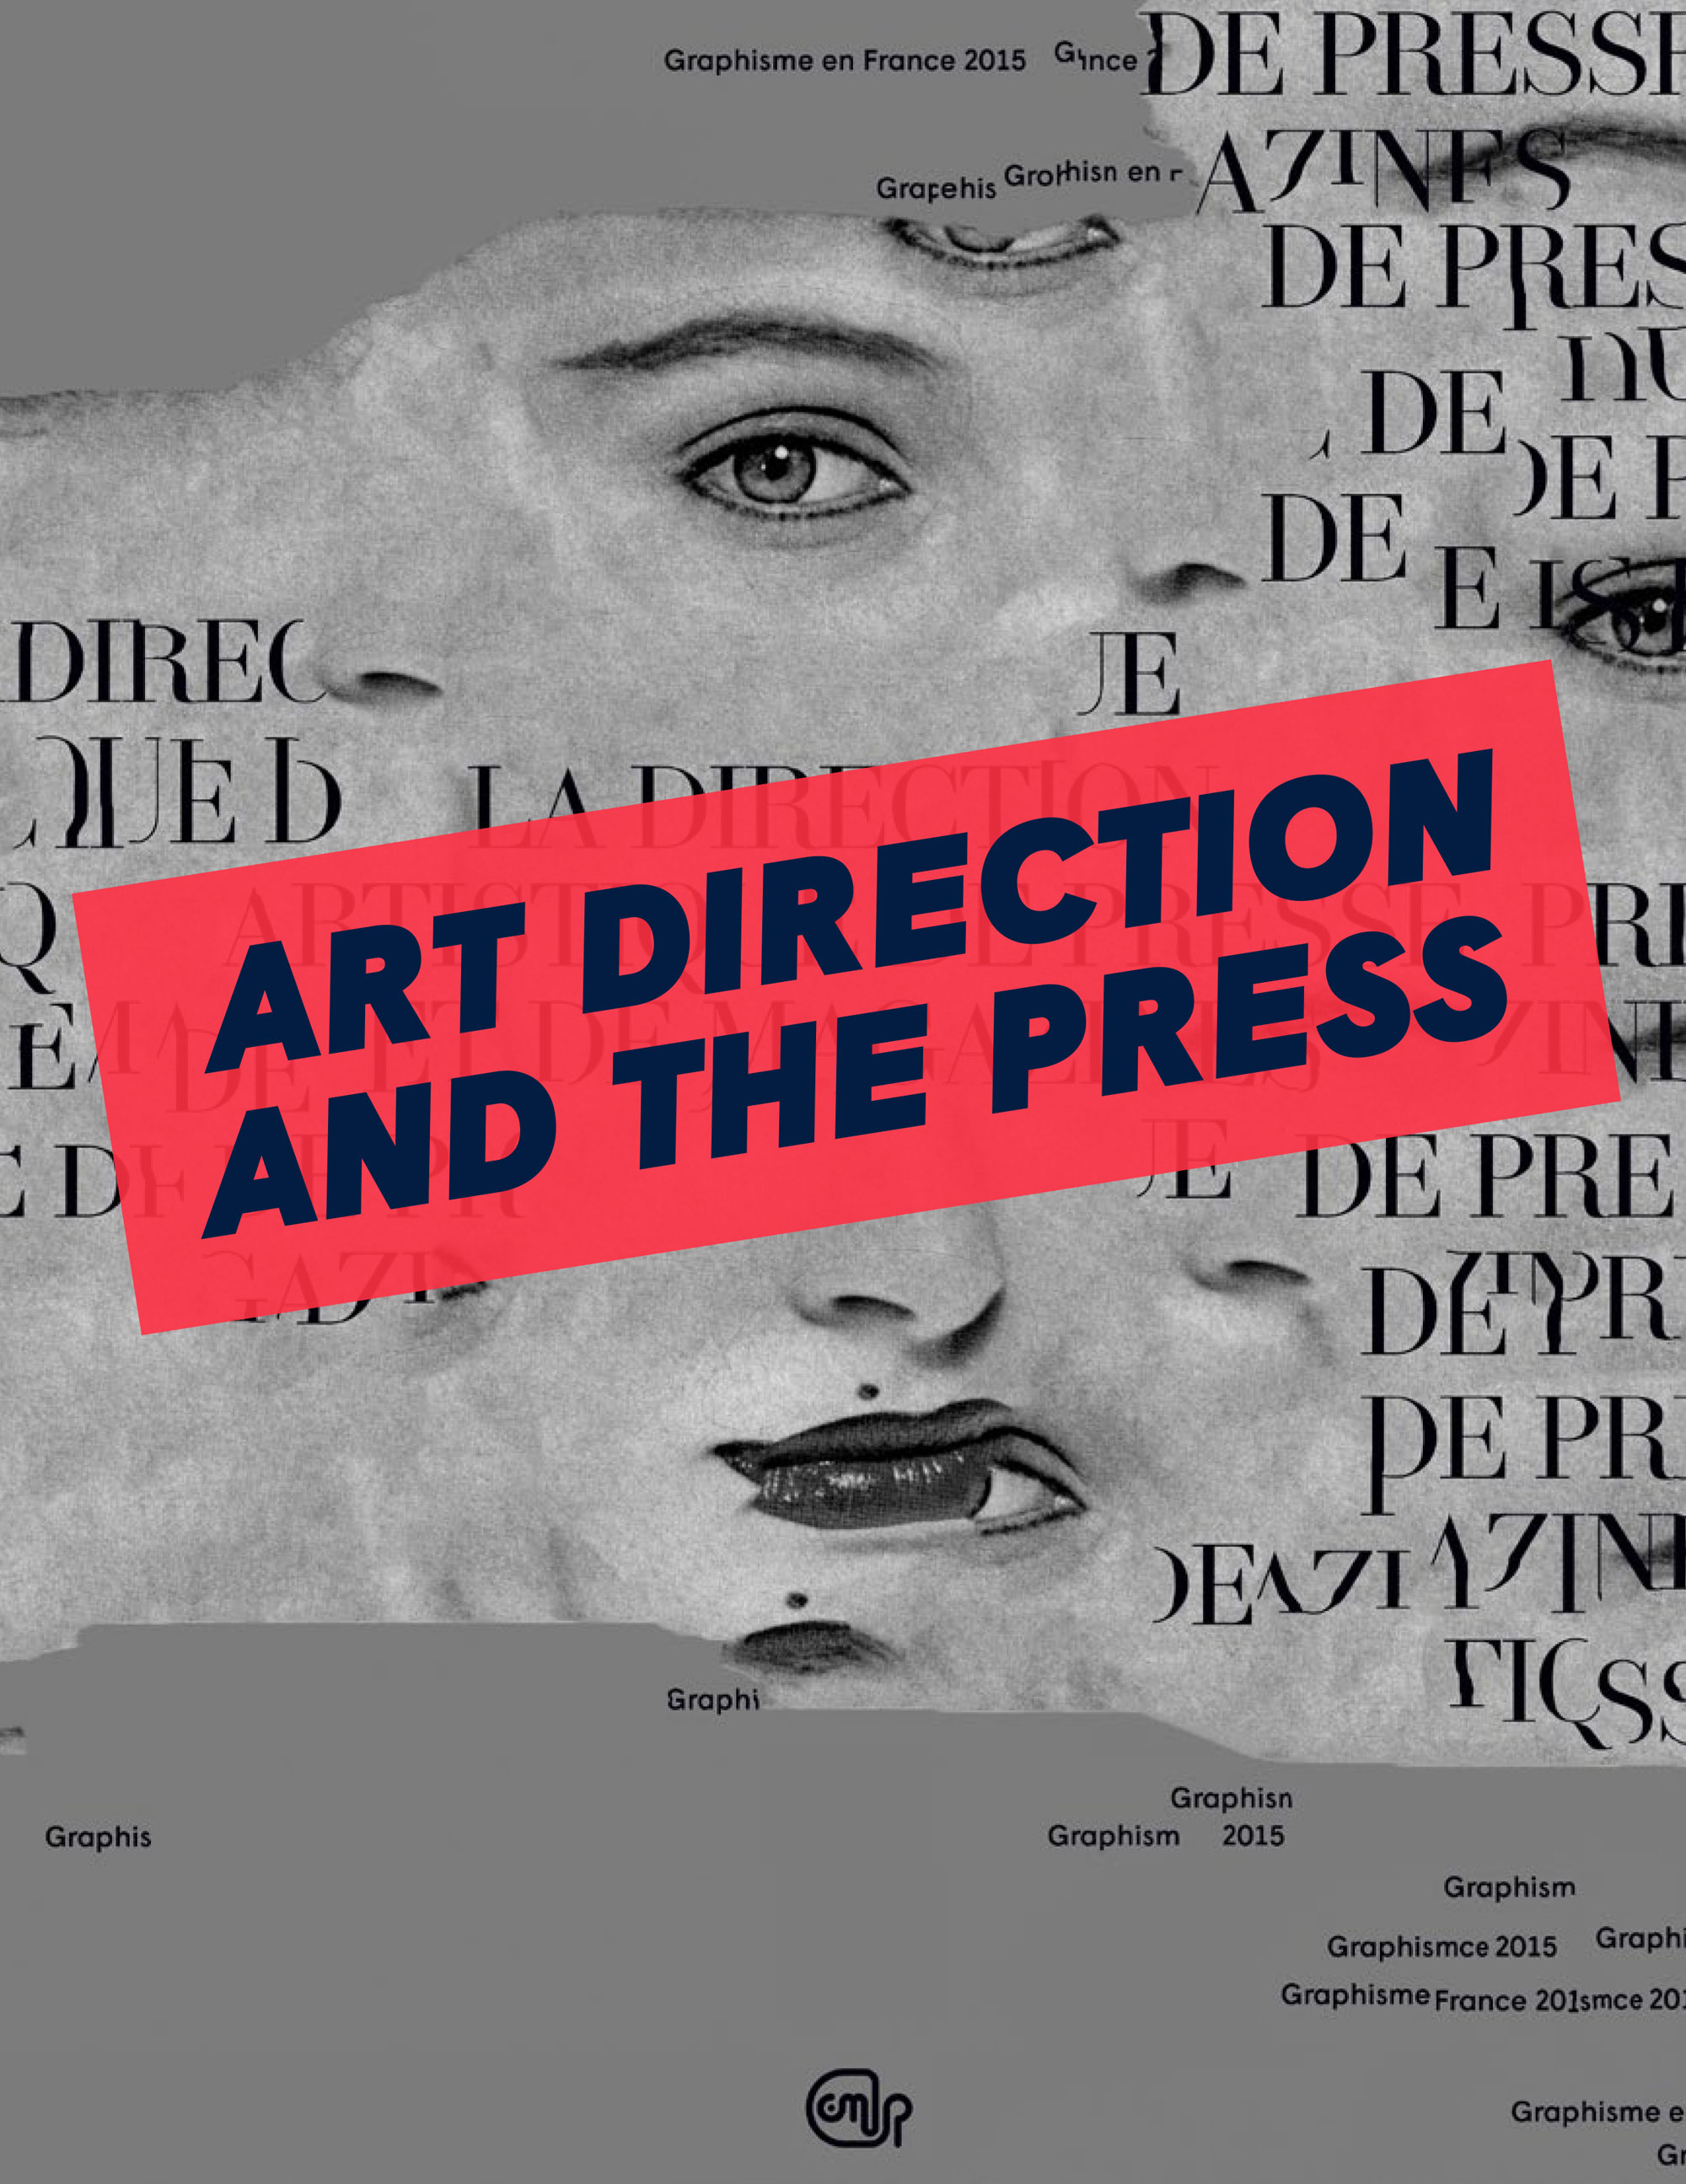 Arte Learn French Francesco Franchi Art Direction And The Press